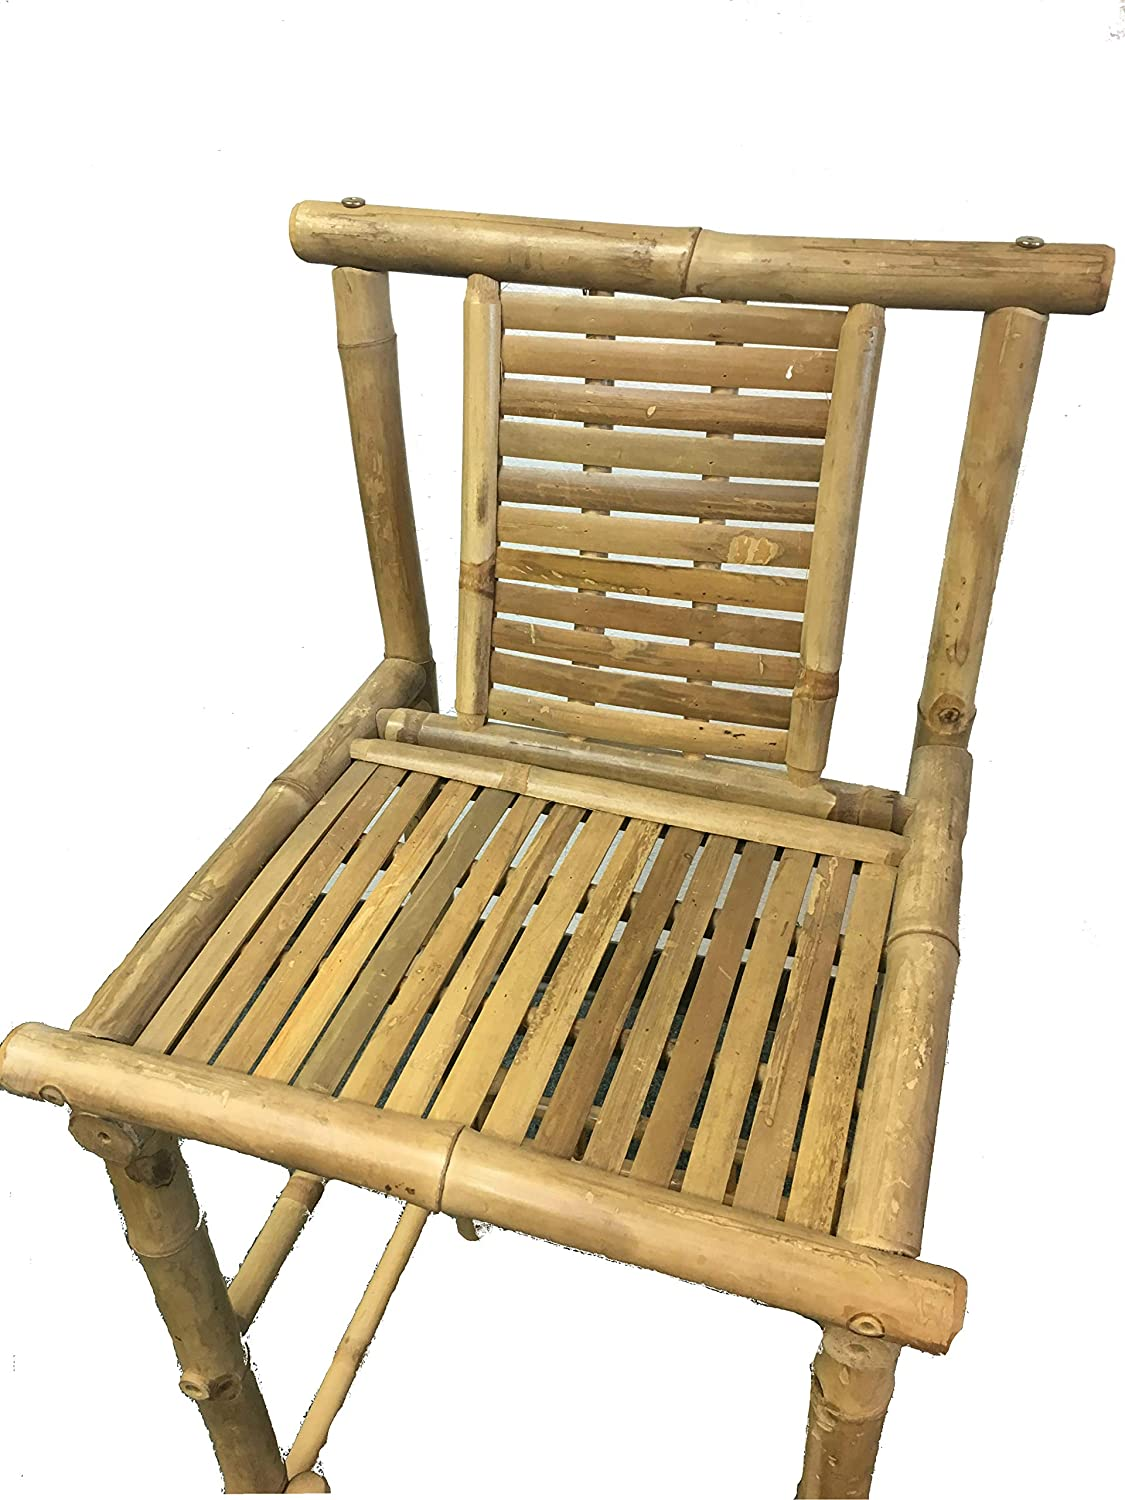 Outstanding Master Garden Products Thb 30 Bamboo Tiki Bar Stool Customarchery Wood Chair Design Ideas Customarcherynet